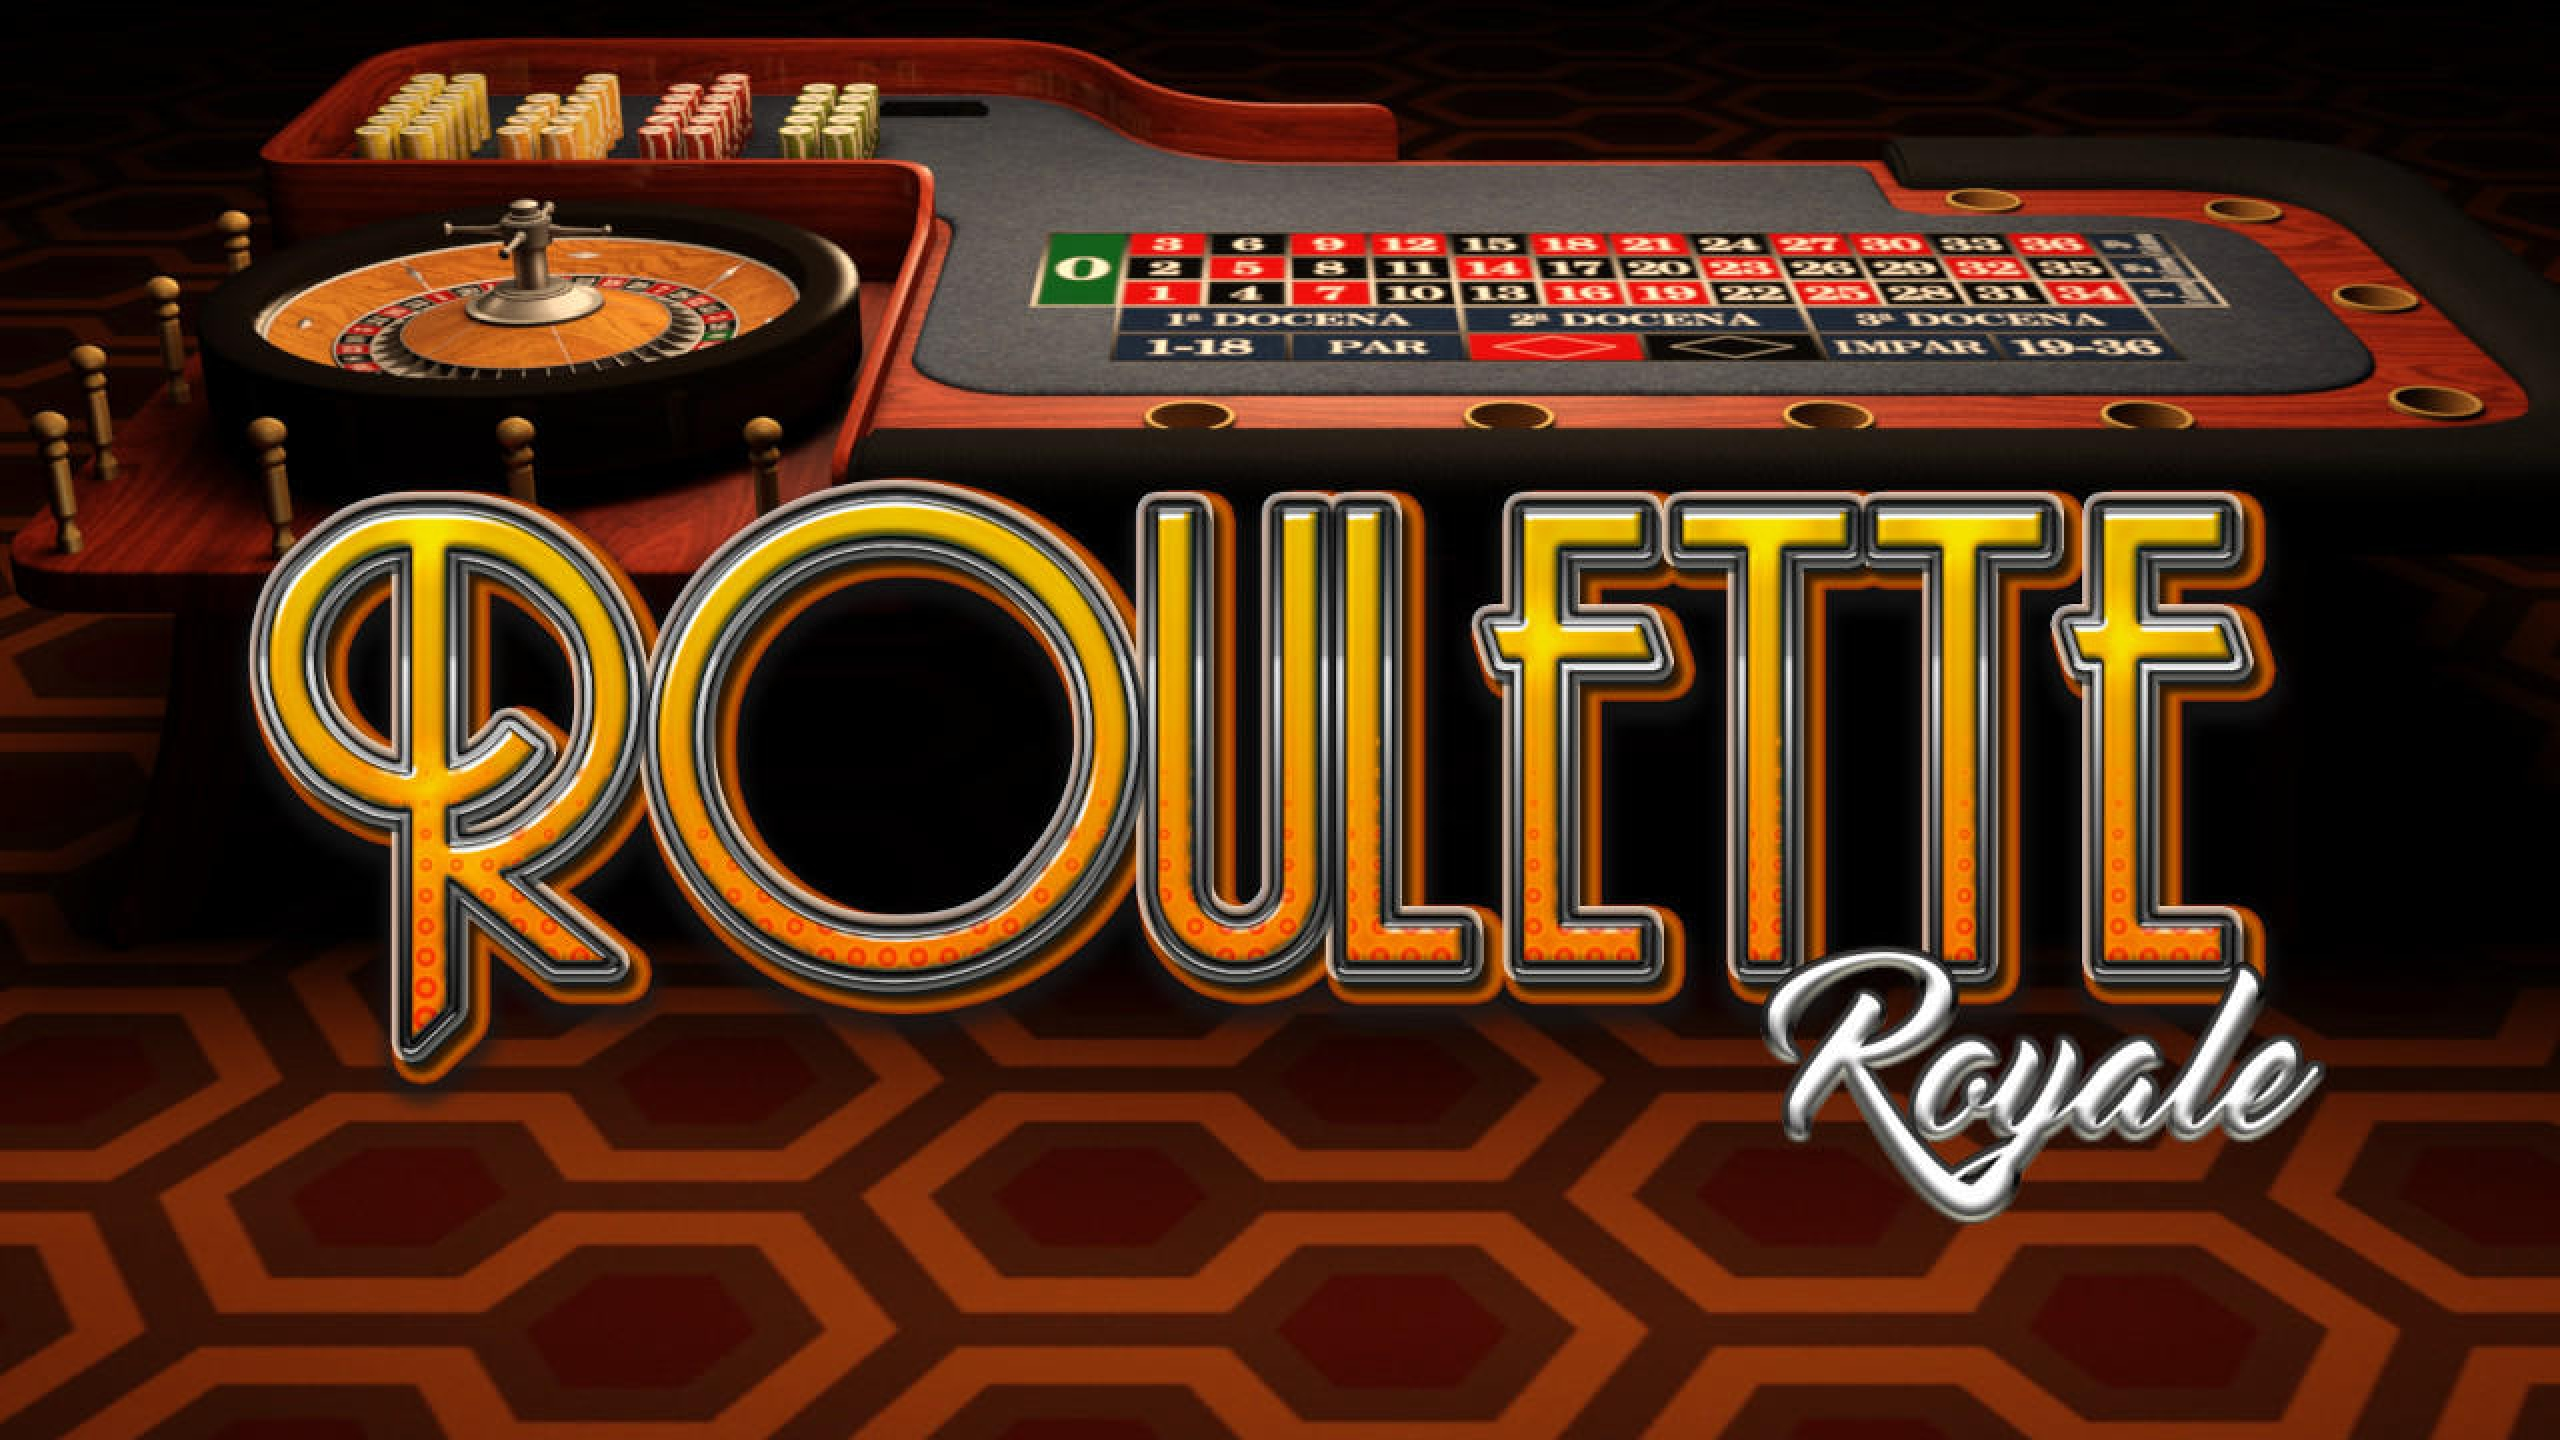 American Roulette (R. Franco) Online Slot Demo Game by RFranco Group